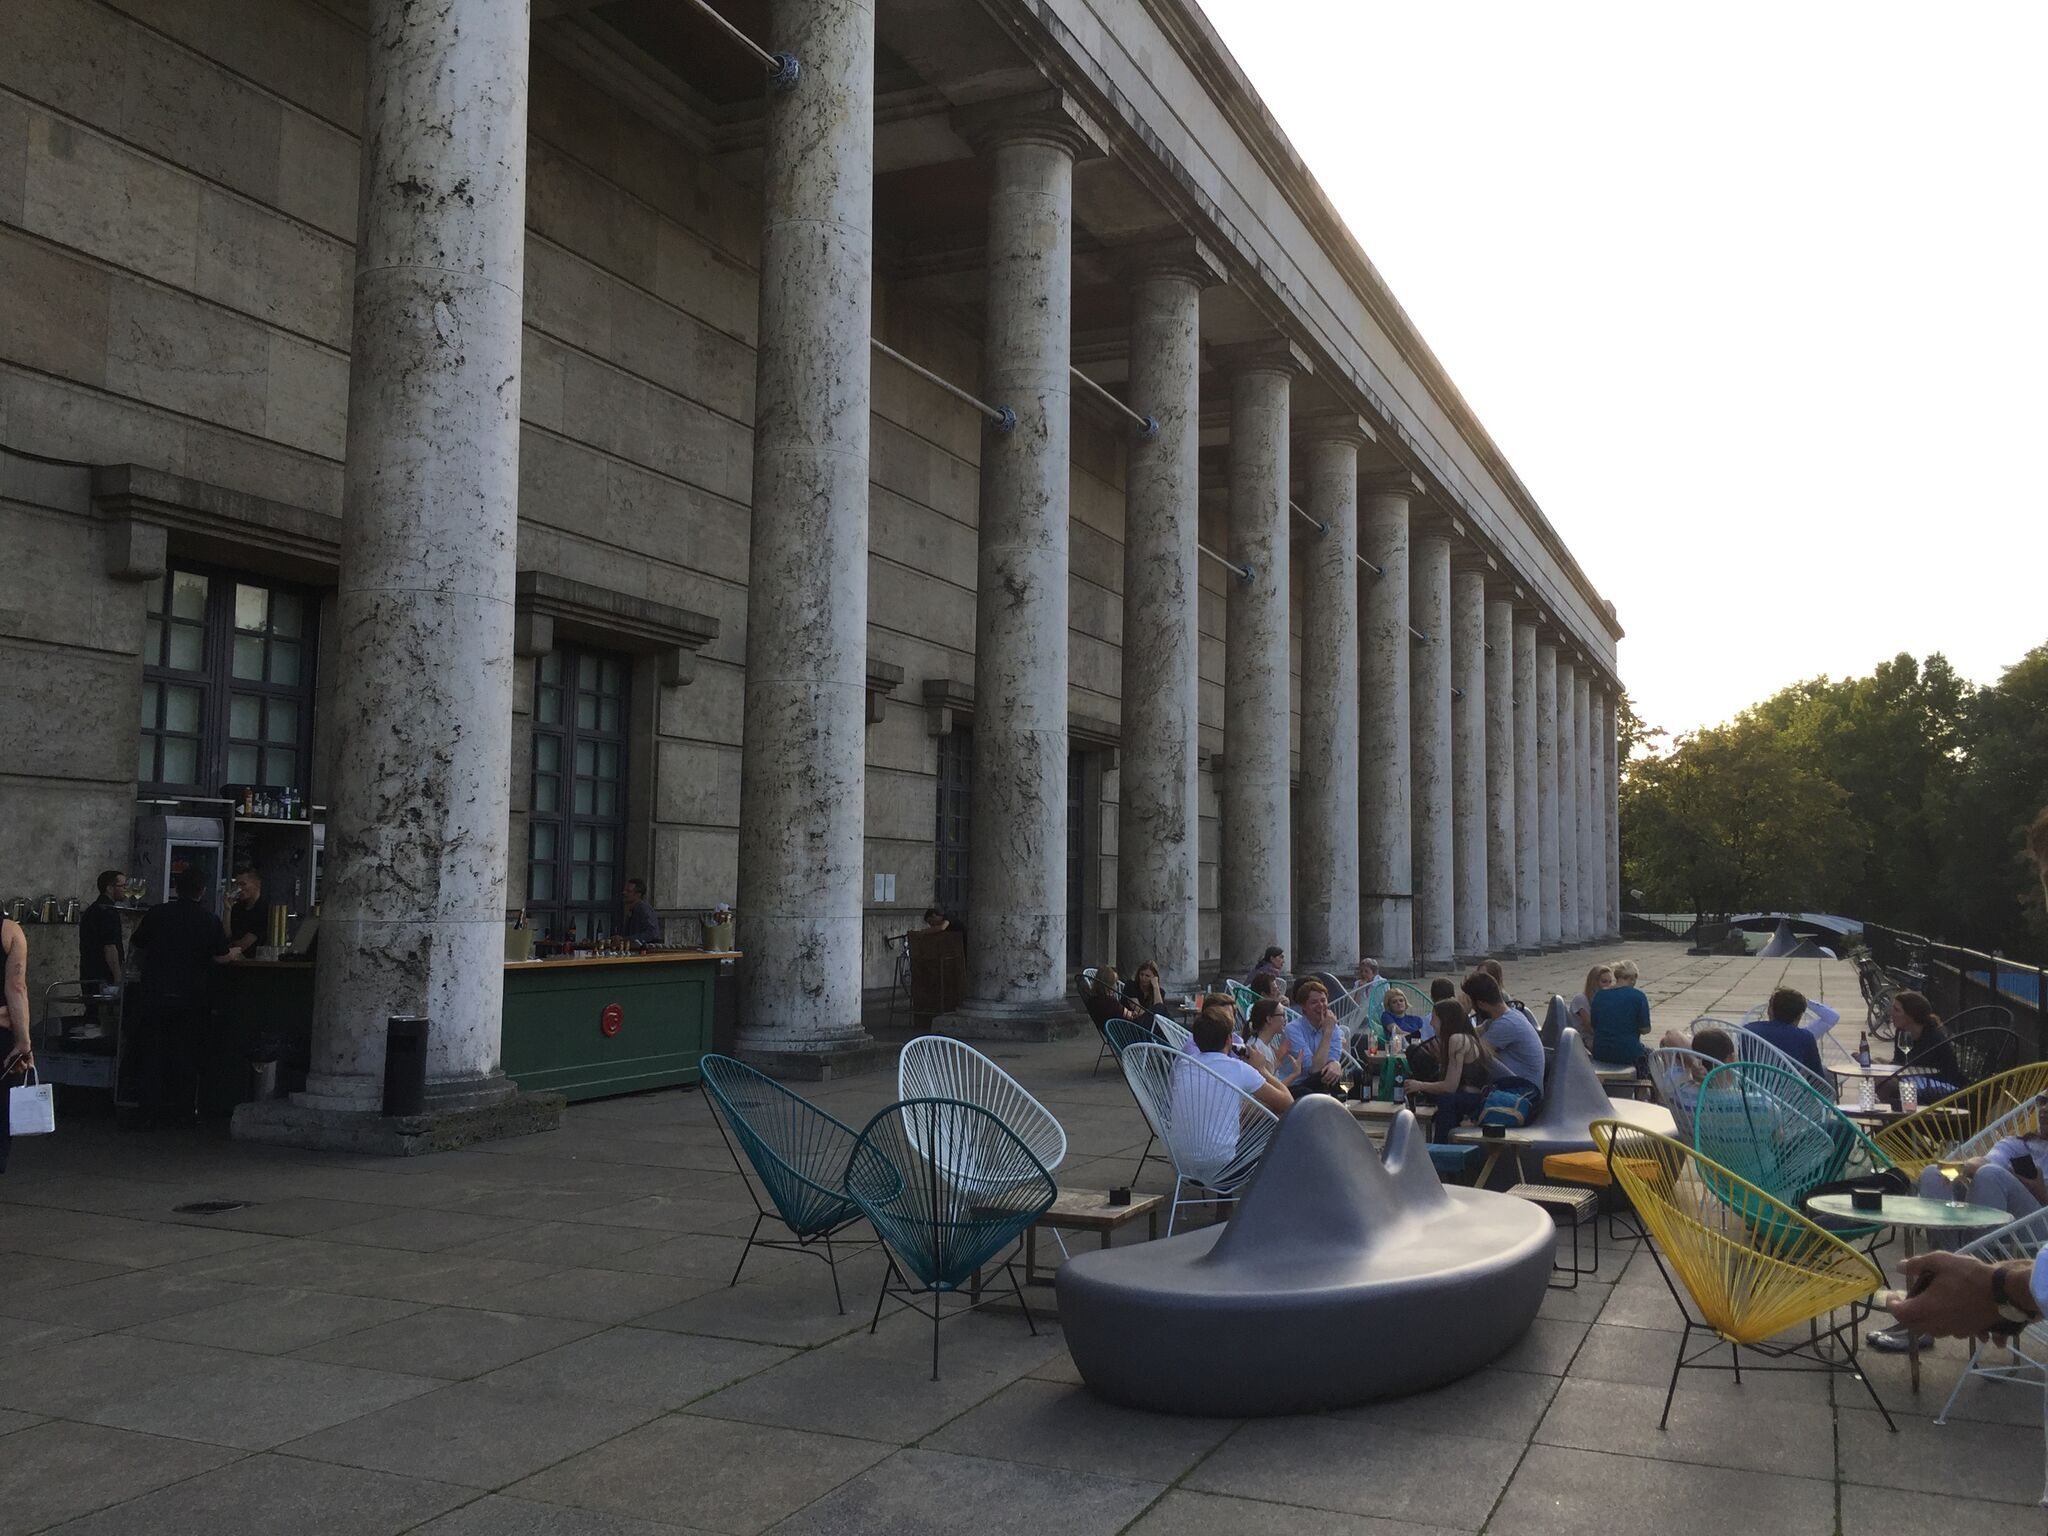 IMG 8728 1024x768 - Best Outdoor Bars and Rooftops for a Drink in Munich